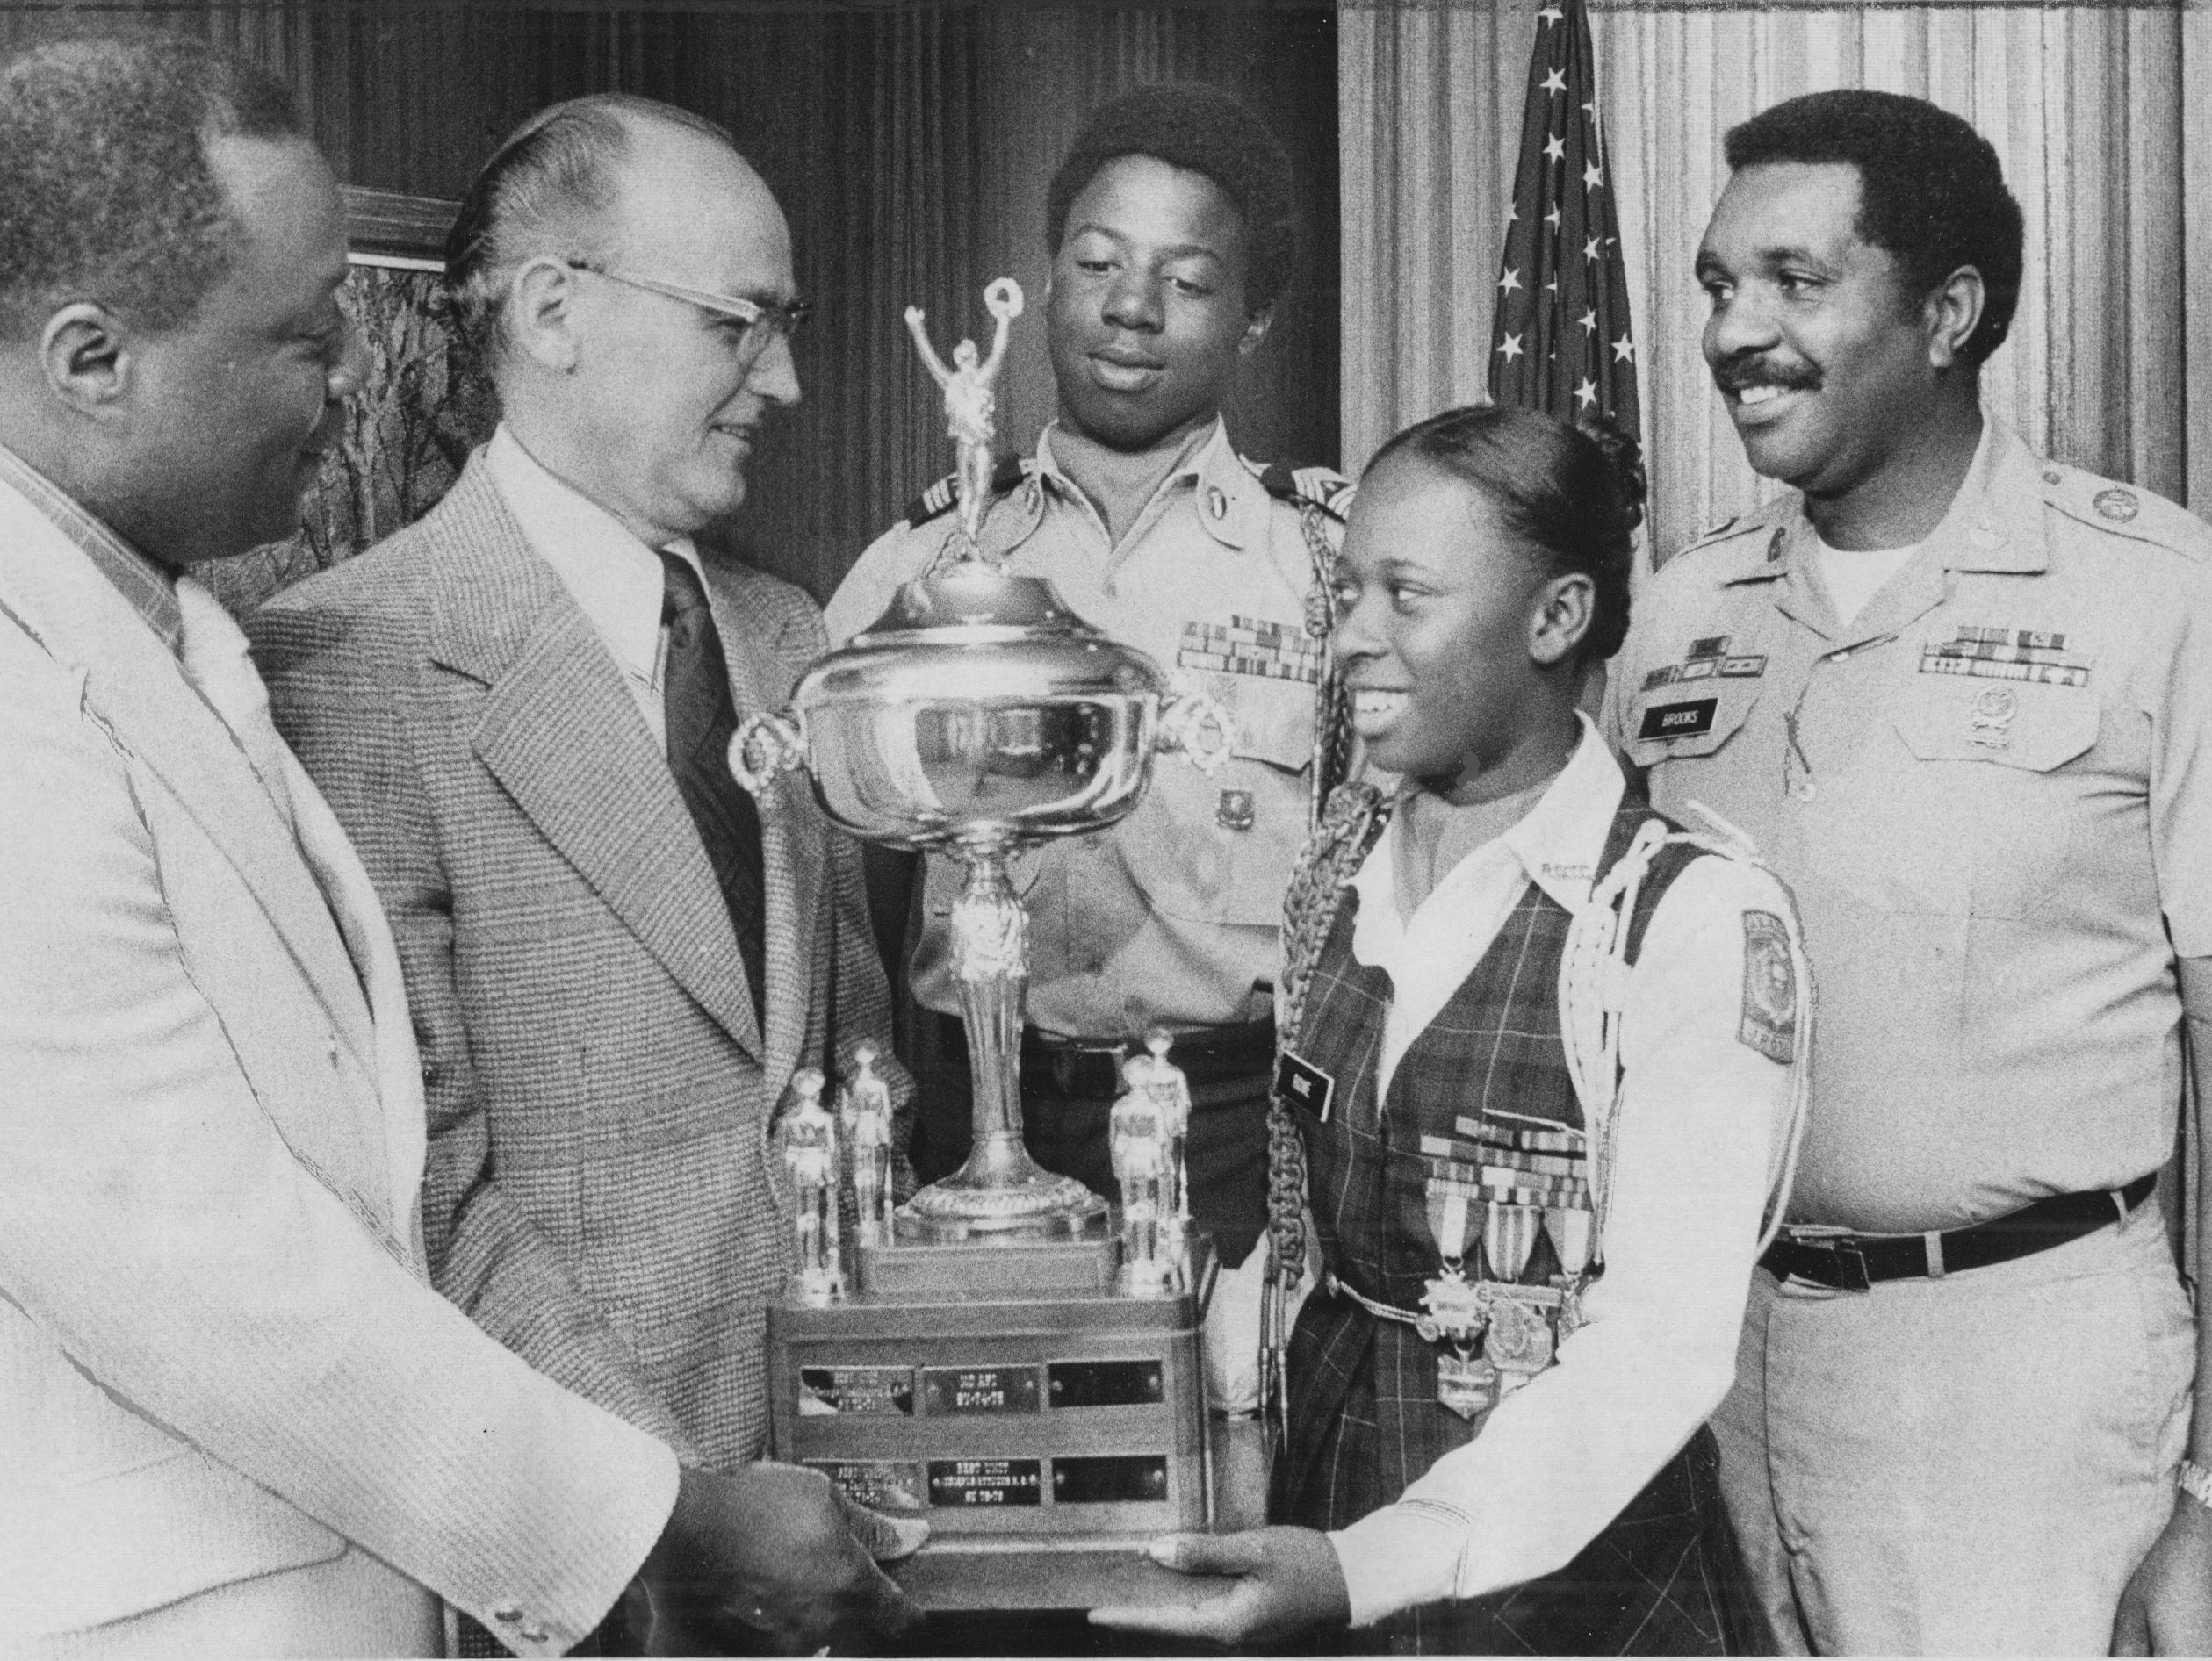 Crispus Attucks High School Junior ROTC unit was honored in 1976 by the Indiana National Guard as the top unit in the state. Shown with the trophy are 9l to r) Earl Donalson, Attucks principal, Indianapolis Schools superintendent Karl Kalp, Cadet Sgt. Maj. Bobby Mills, Cadet Col. Linda Rowe and JROTC instructor M. Sgt. Clarence Brooks.